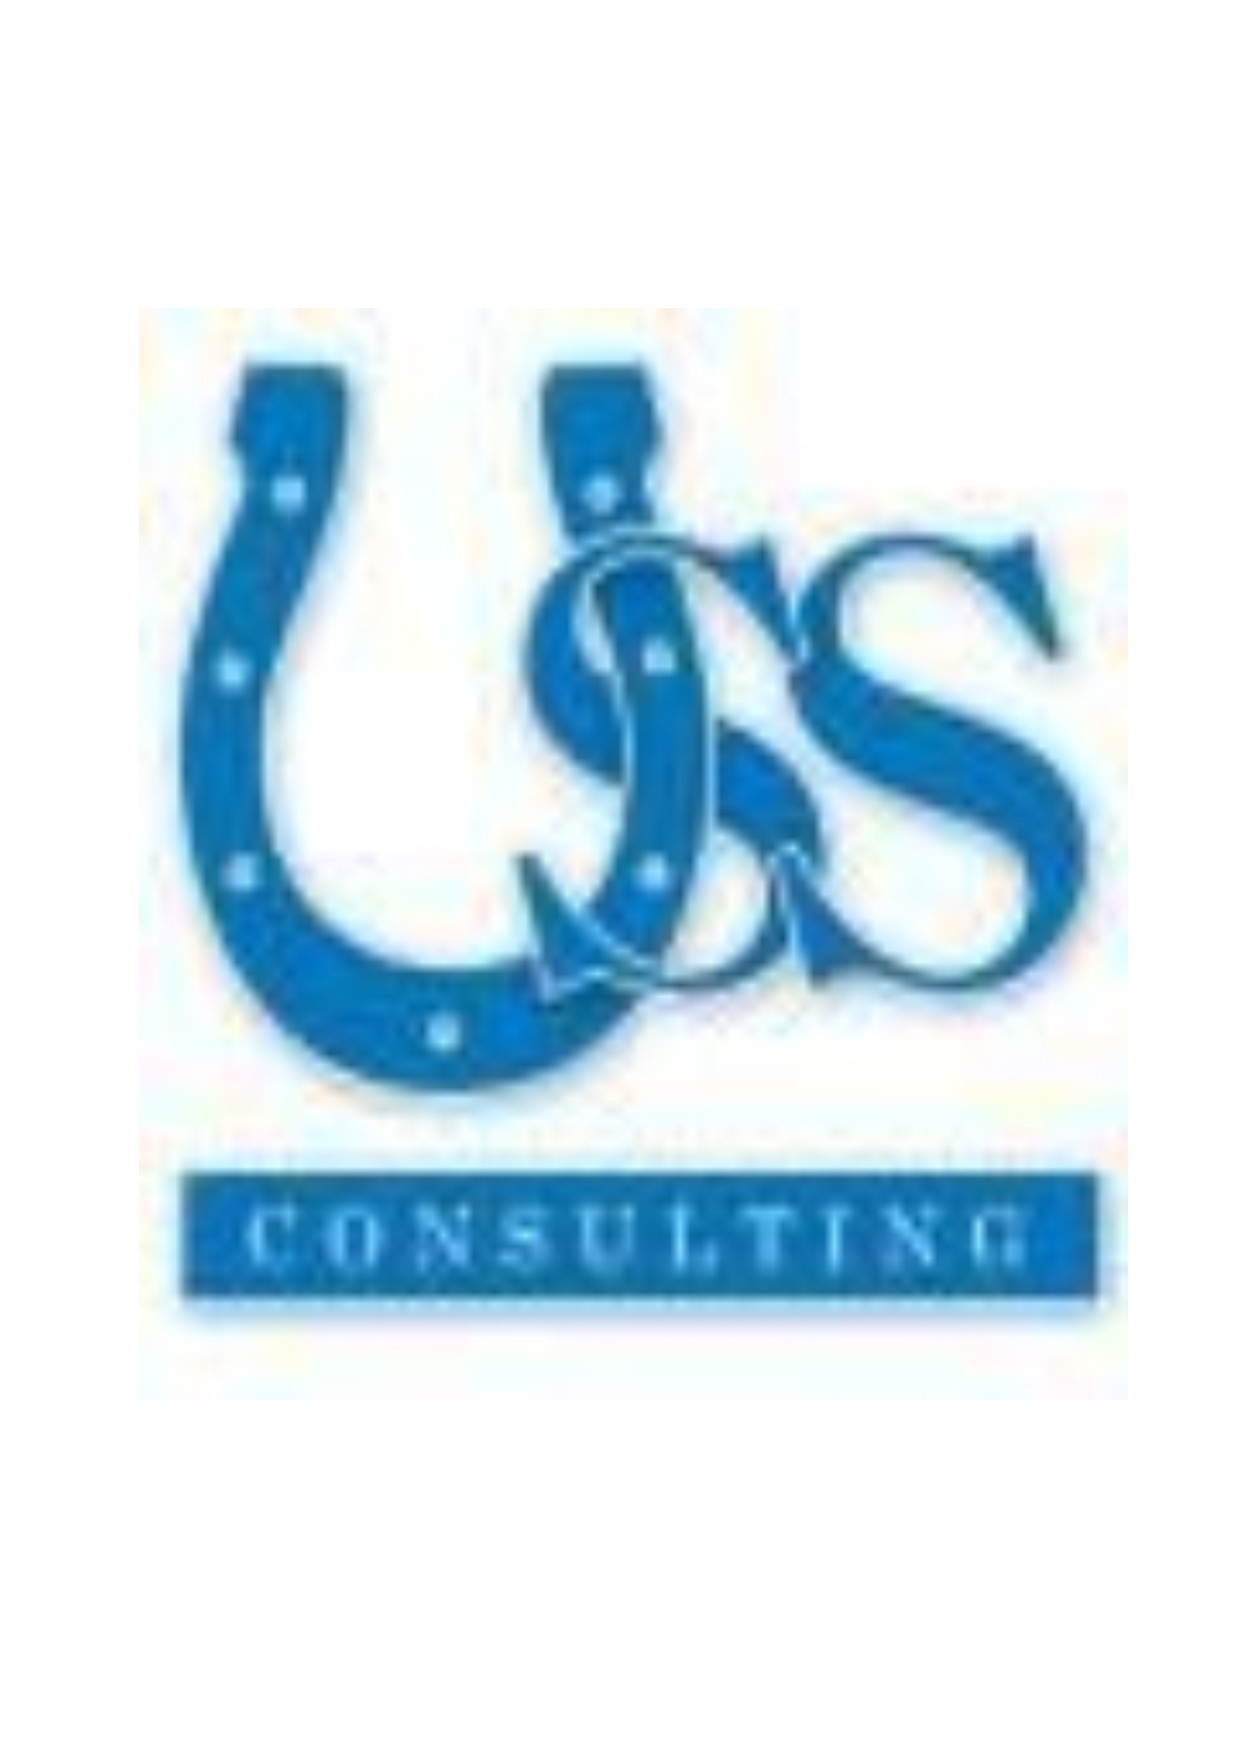 USS Business Consulting